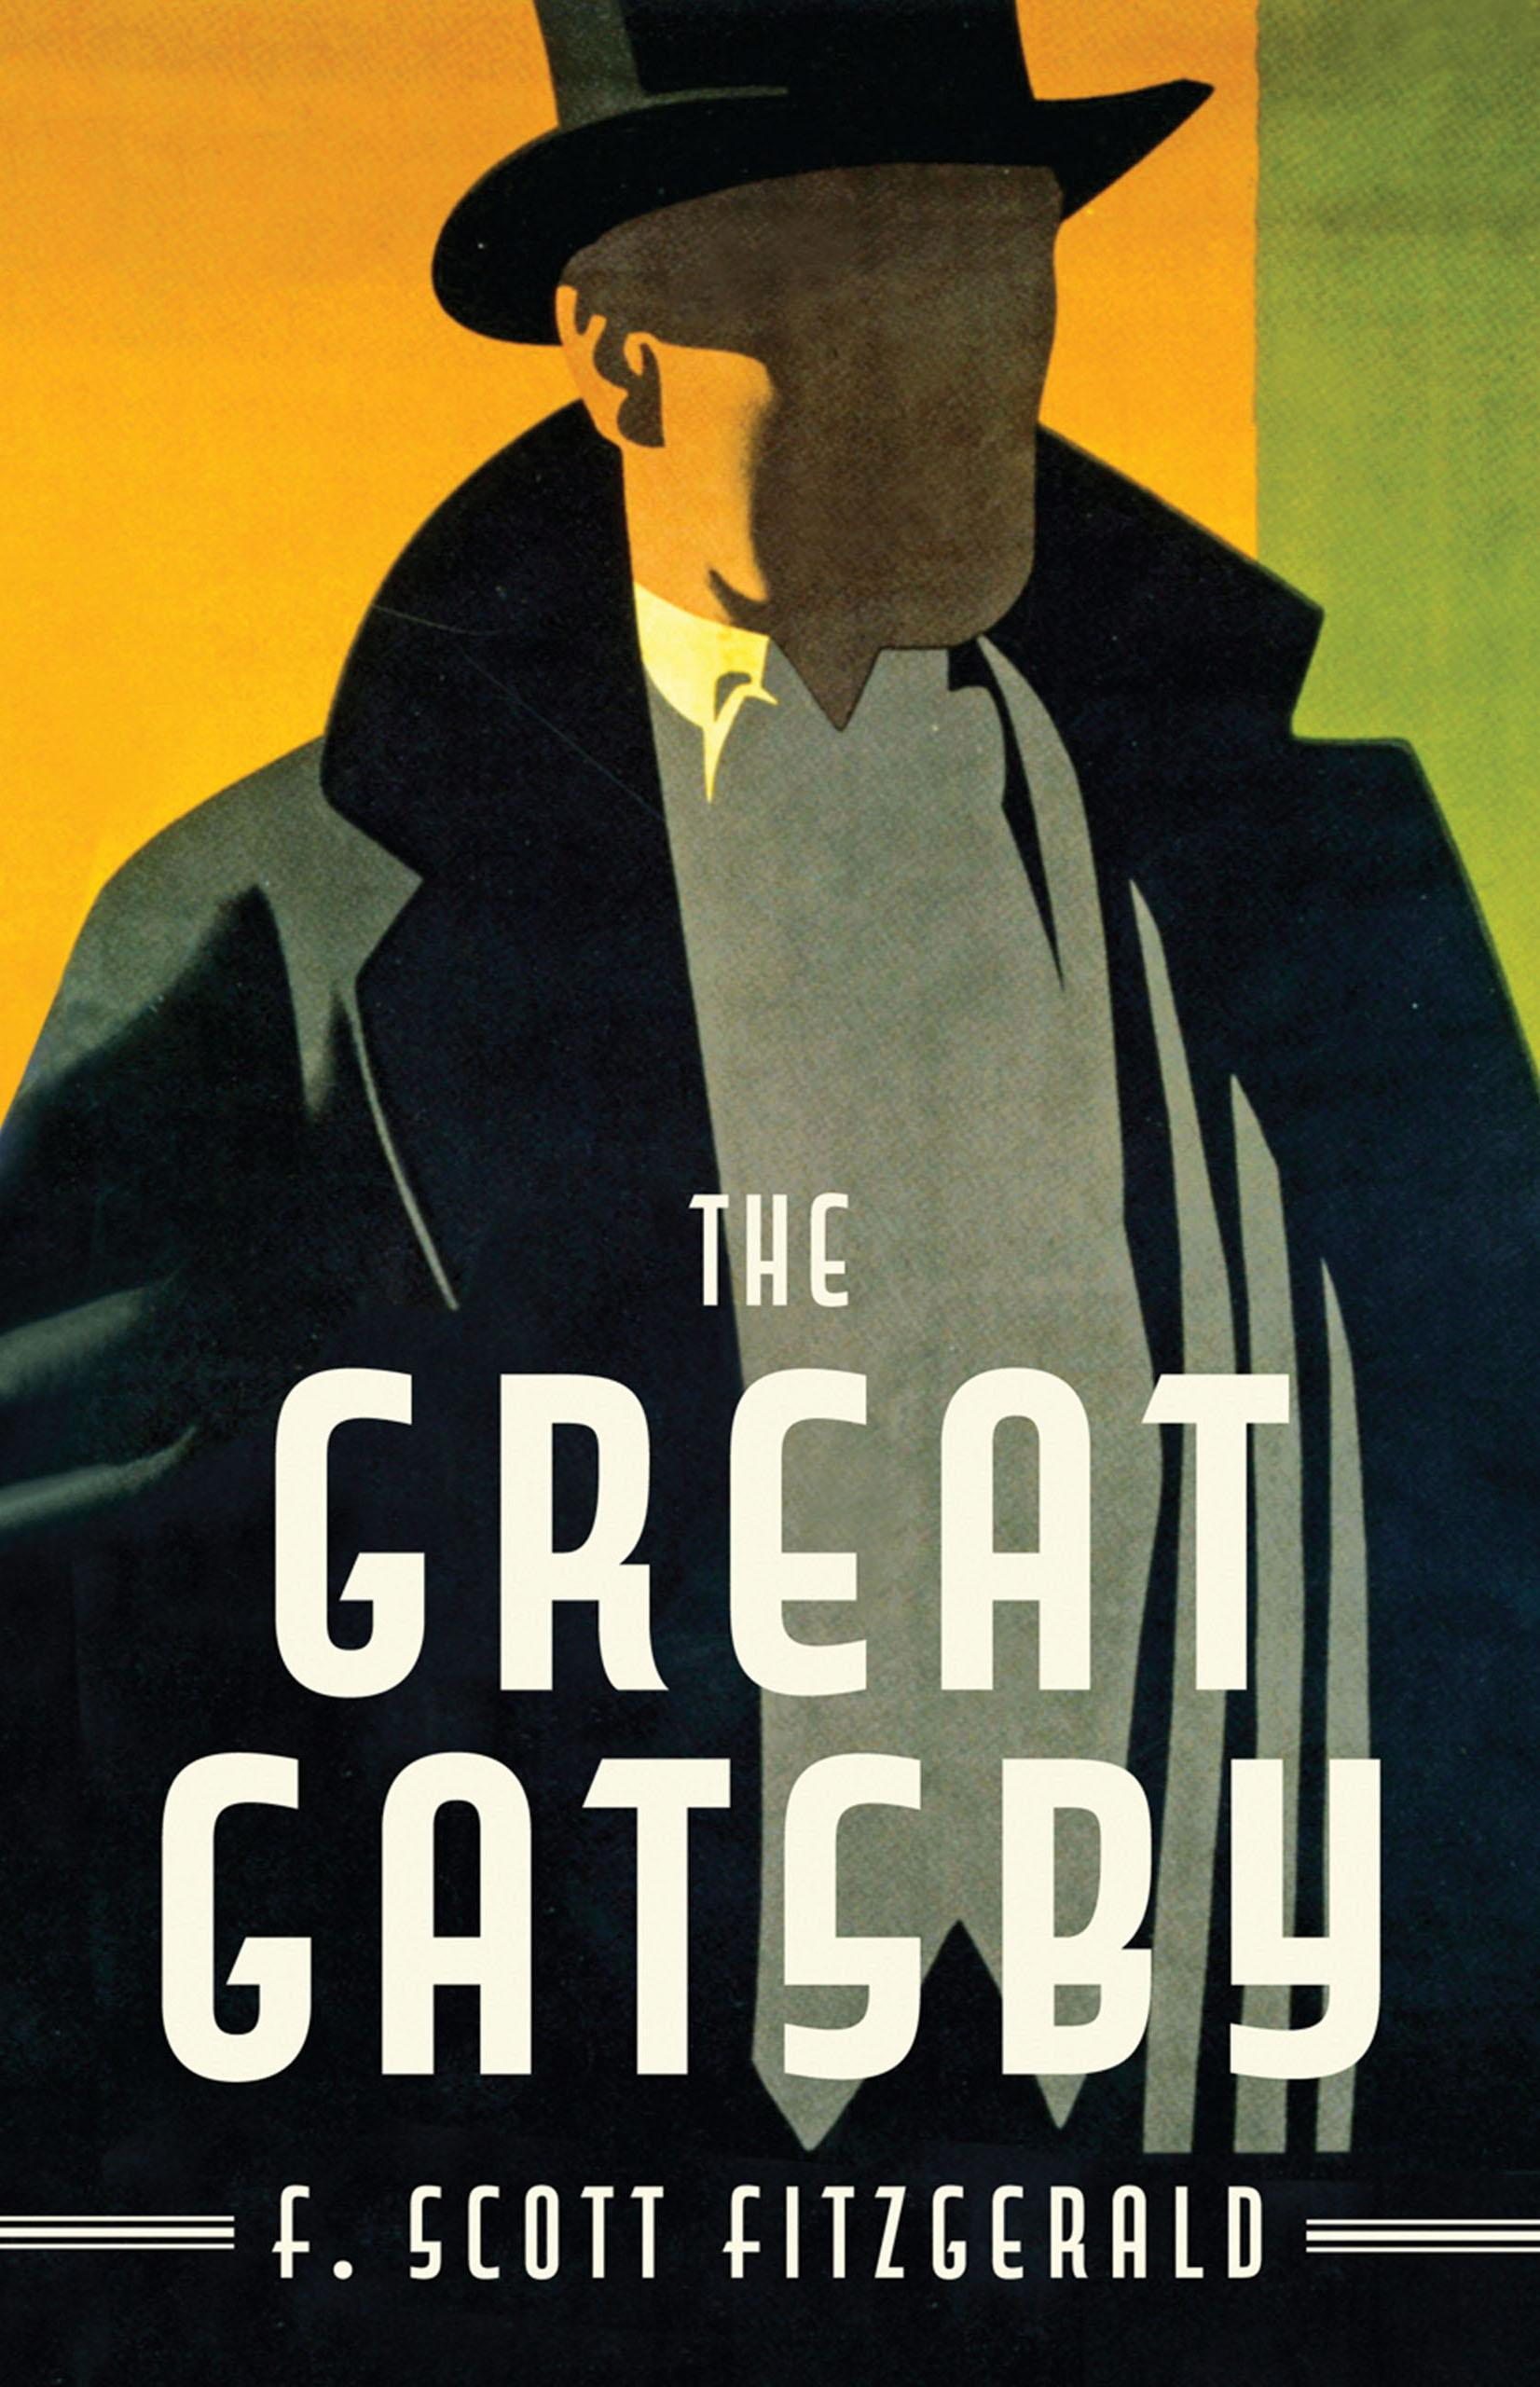 a comparison of the great gatsby by f scott fitzgerald and the kite runner by taylor coleridge Tenzin marco-taylor has 6 books on goodreads, and recently added the kite runner by khaled hosseini, the battle of the labyrinth by rick riordan, the hun.